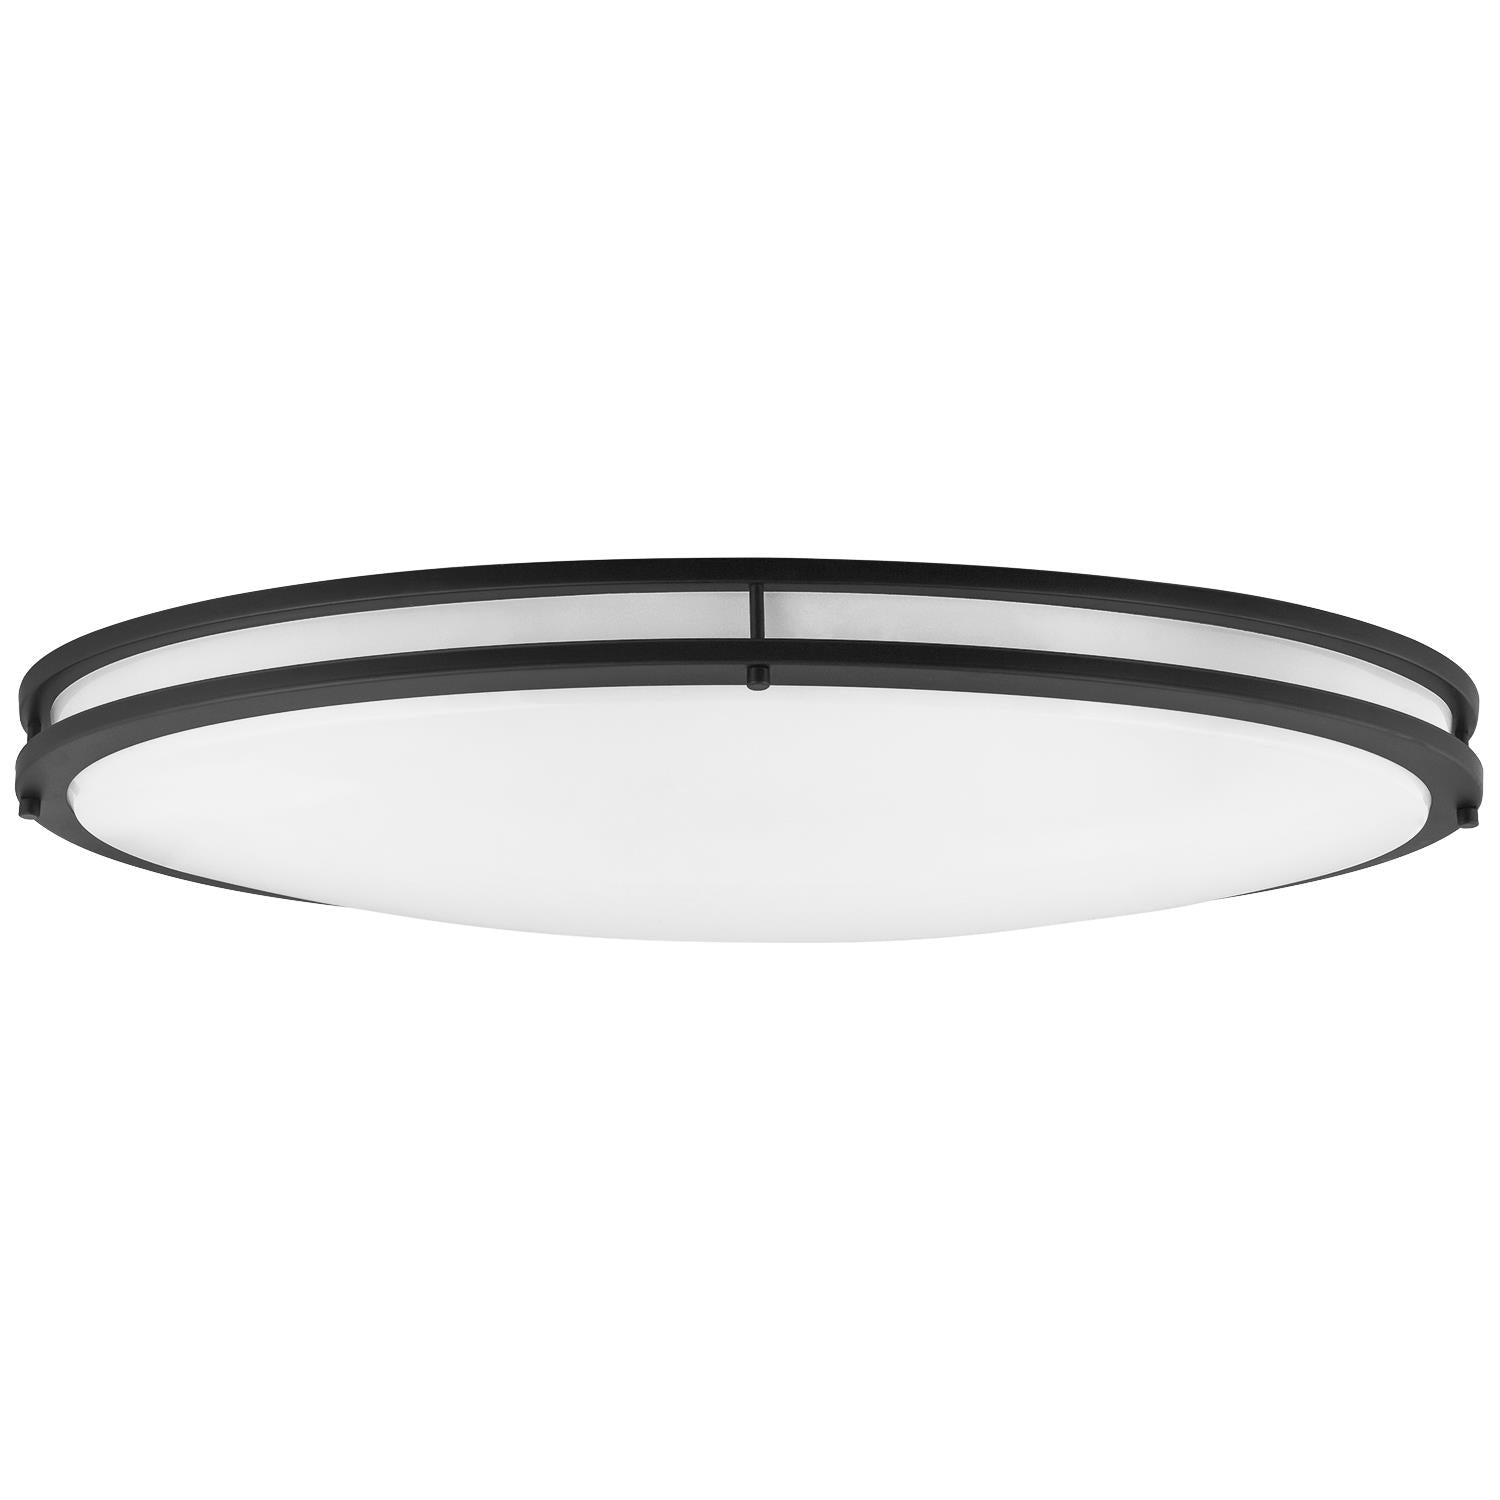 "Sunlite 49095-SU 35w 32"" LED Oval Flush Mount Fixture in Black Finish 3000k"